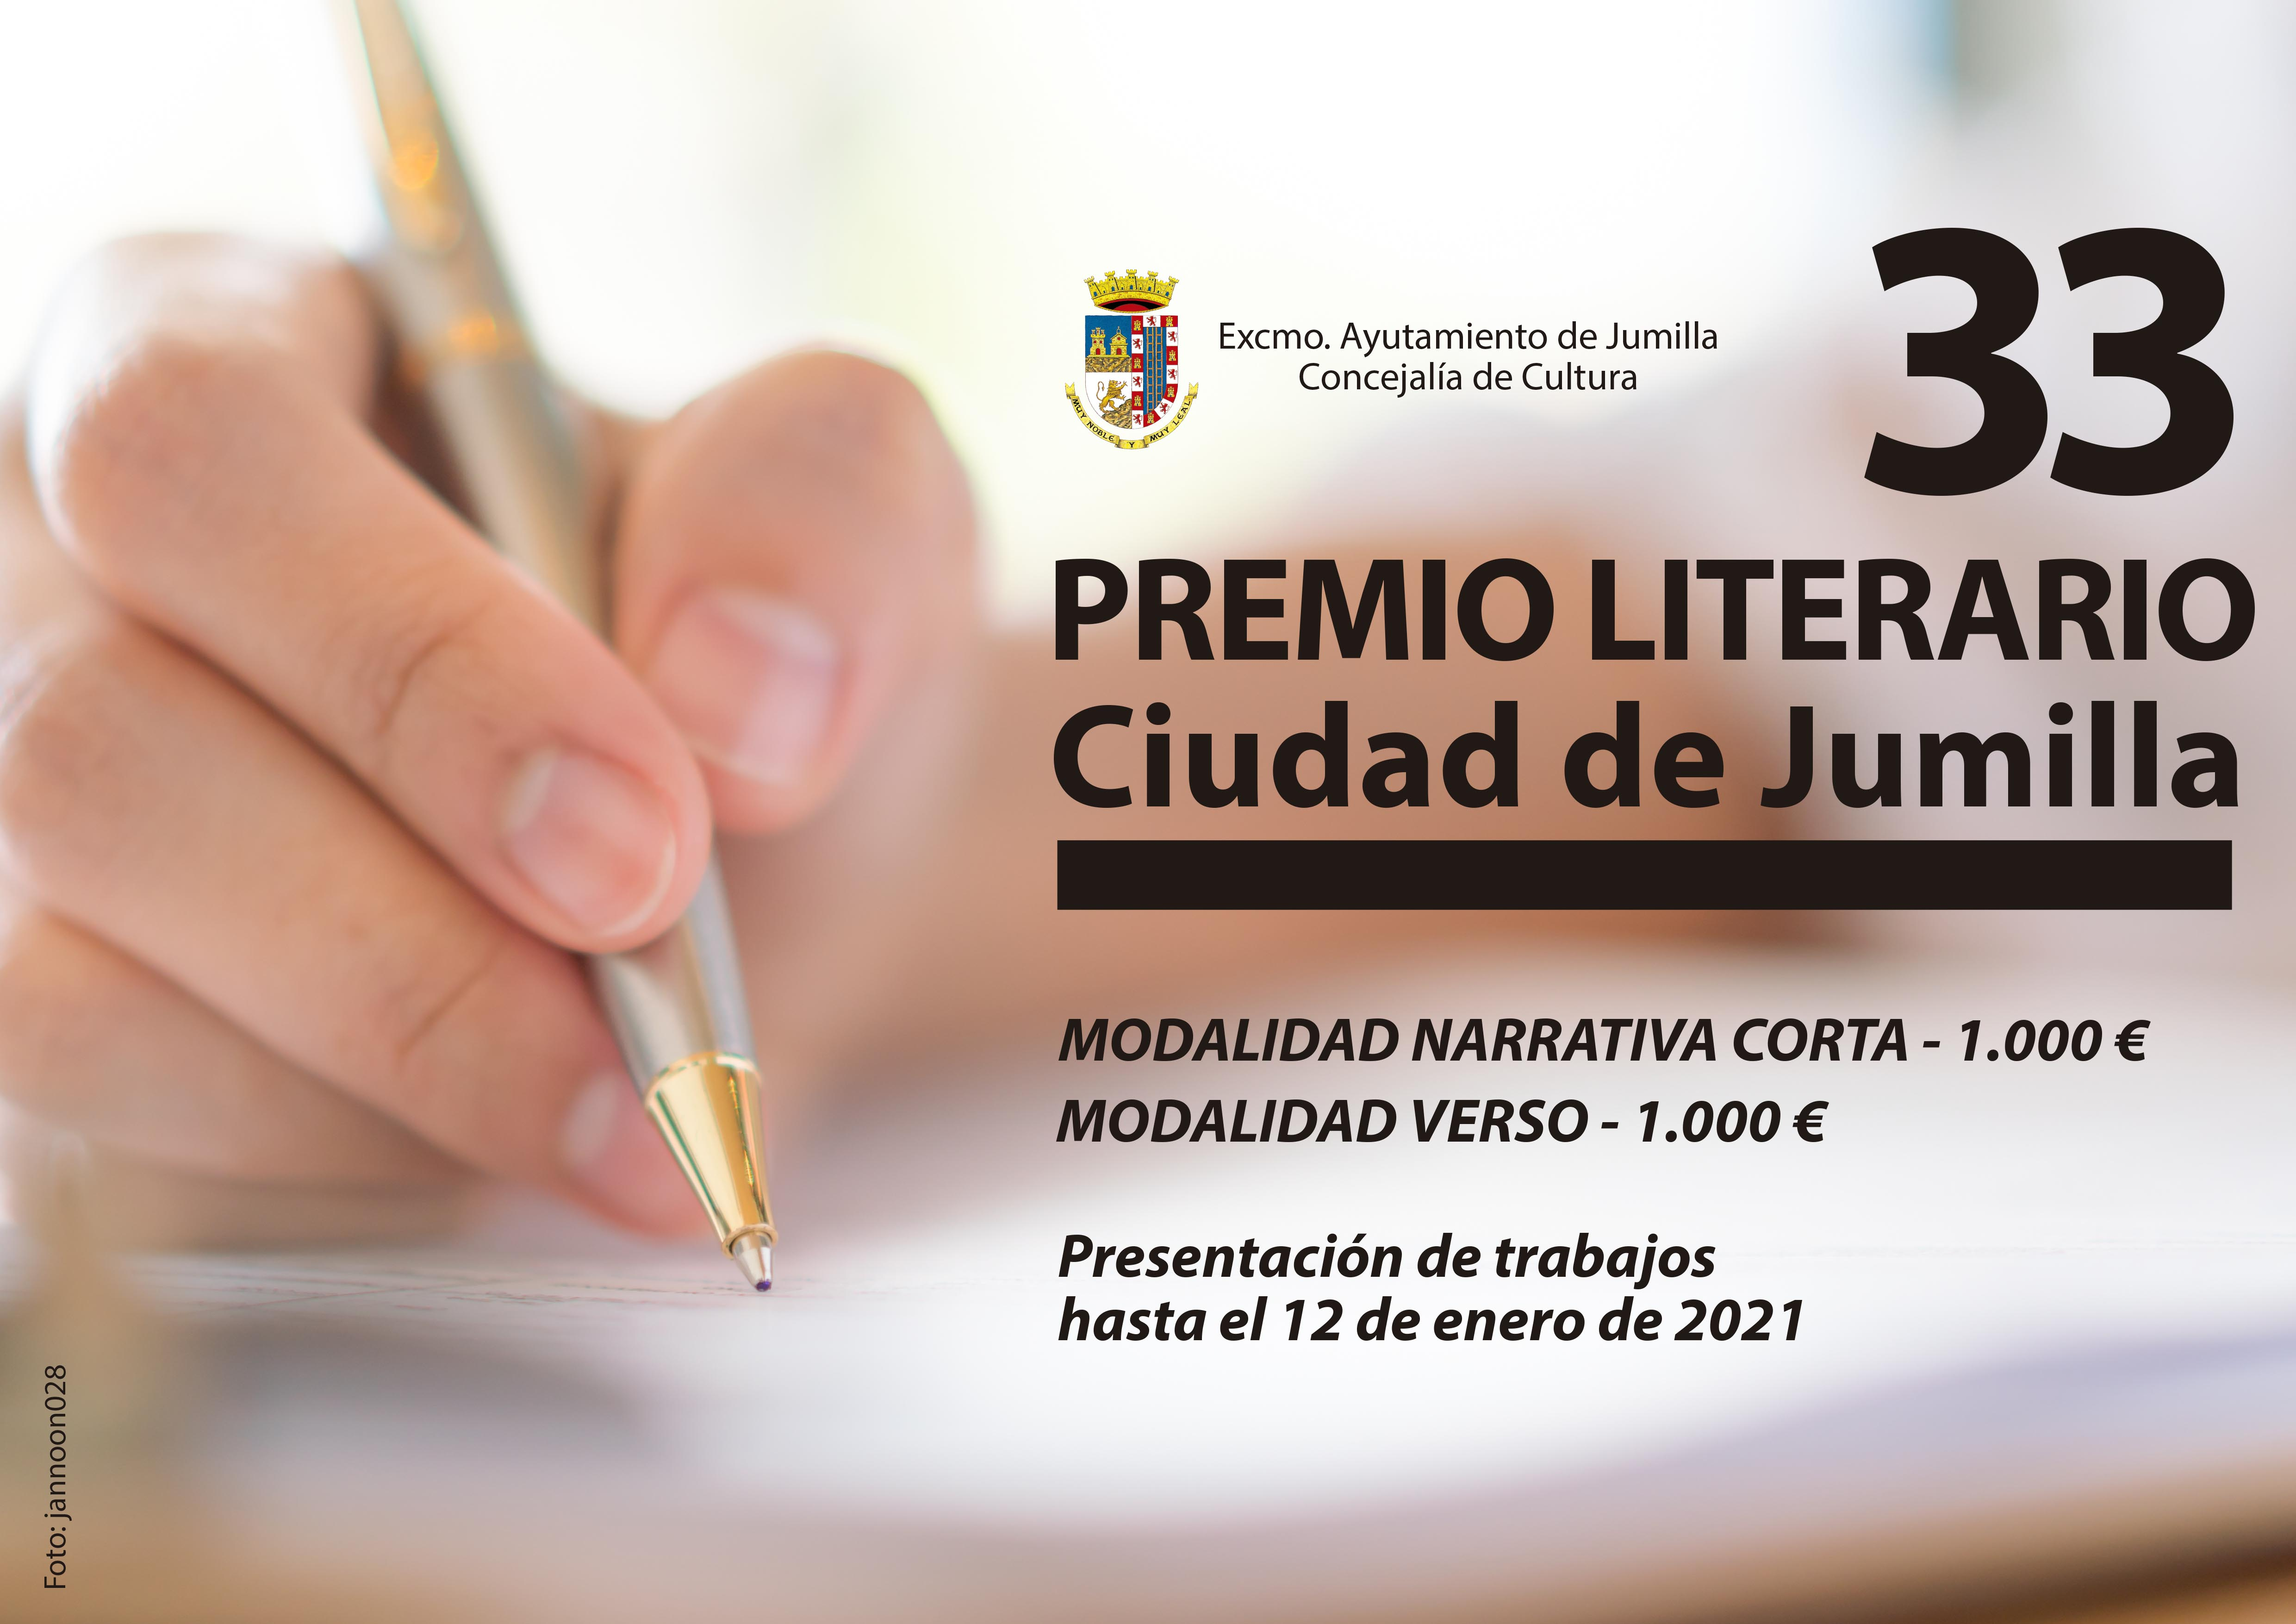 33 PREMIO LITERARIO CIUDAD DE JUMILLA. Sale del sitio www.jumilla.org